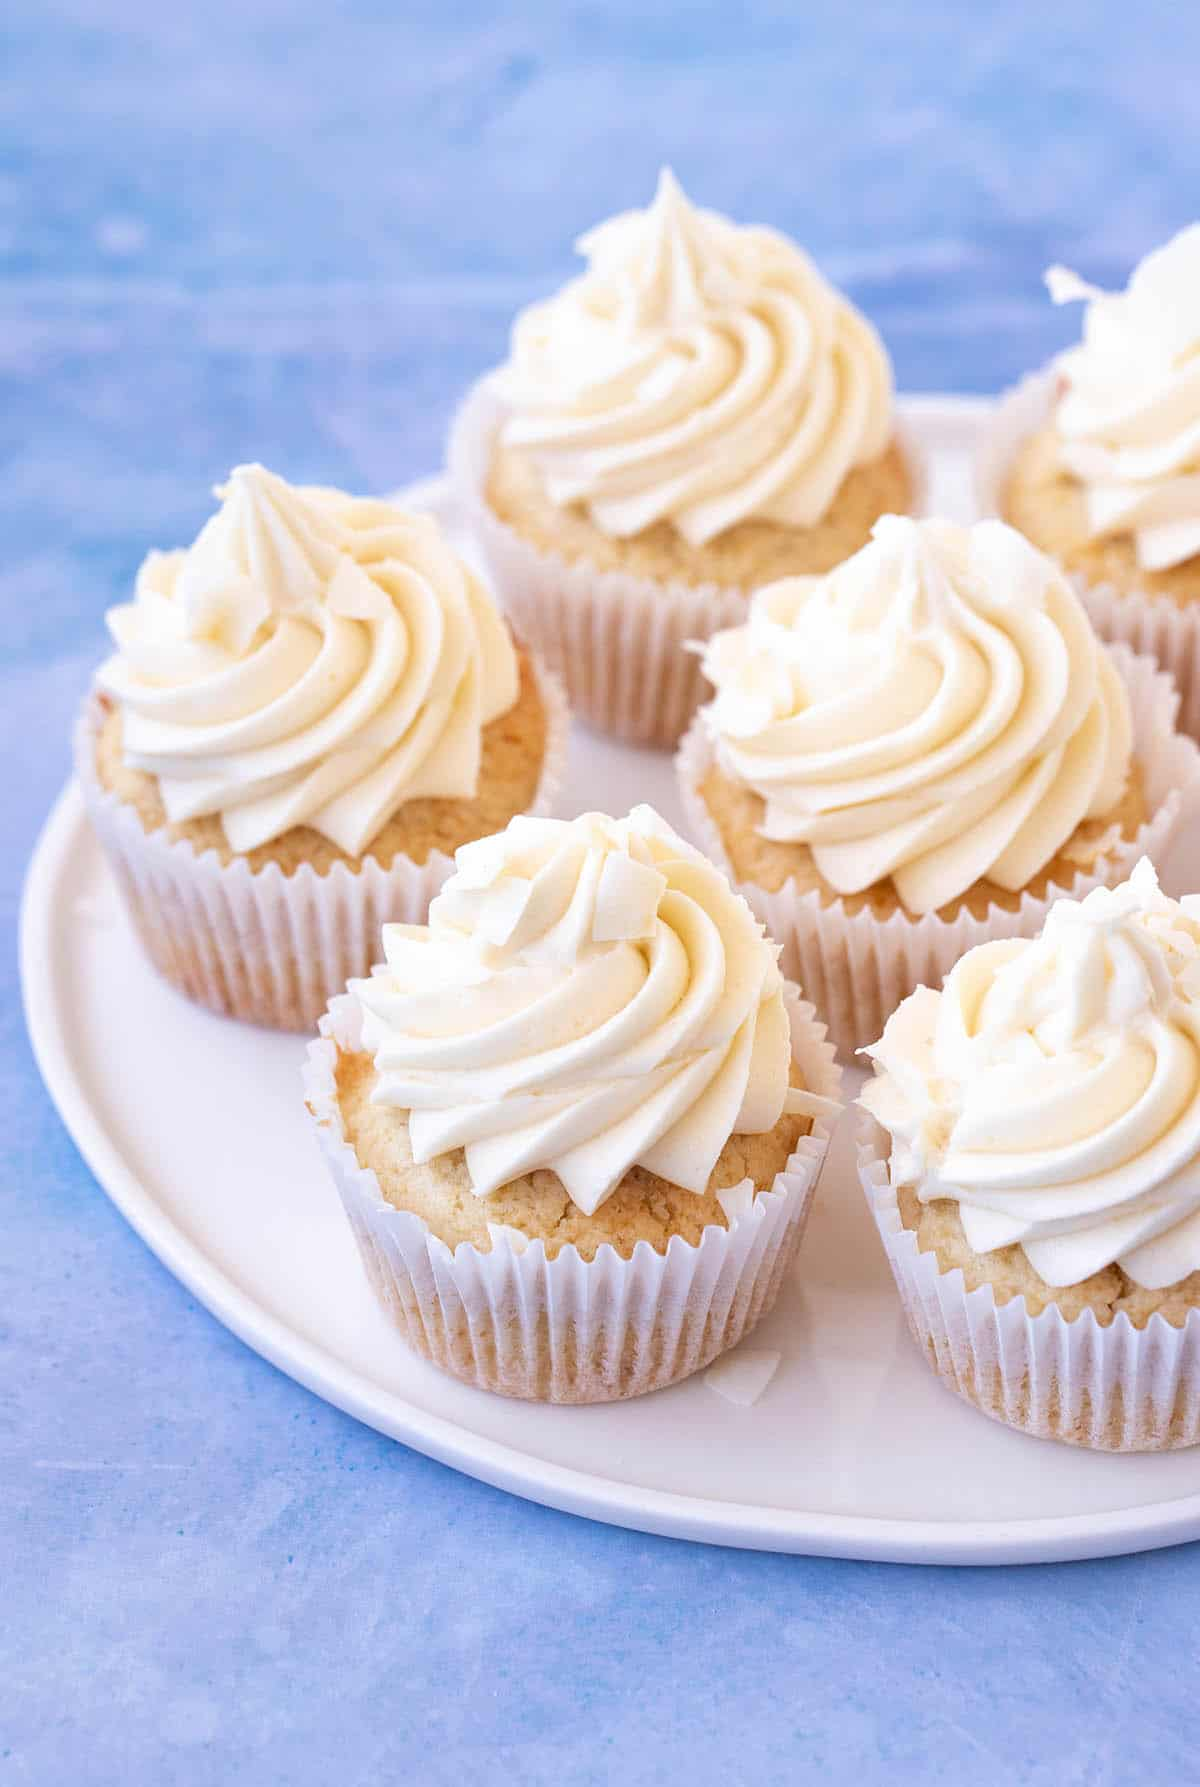 Perfect Coconut Cupcakes with swirls of creamy frosting on a blue background